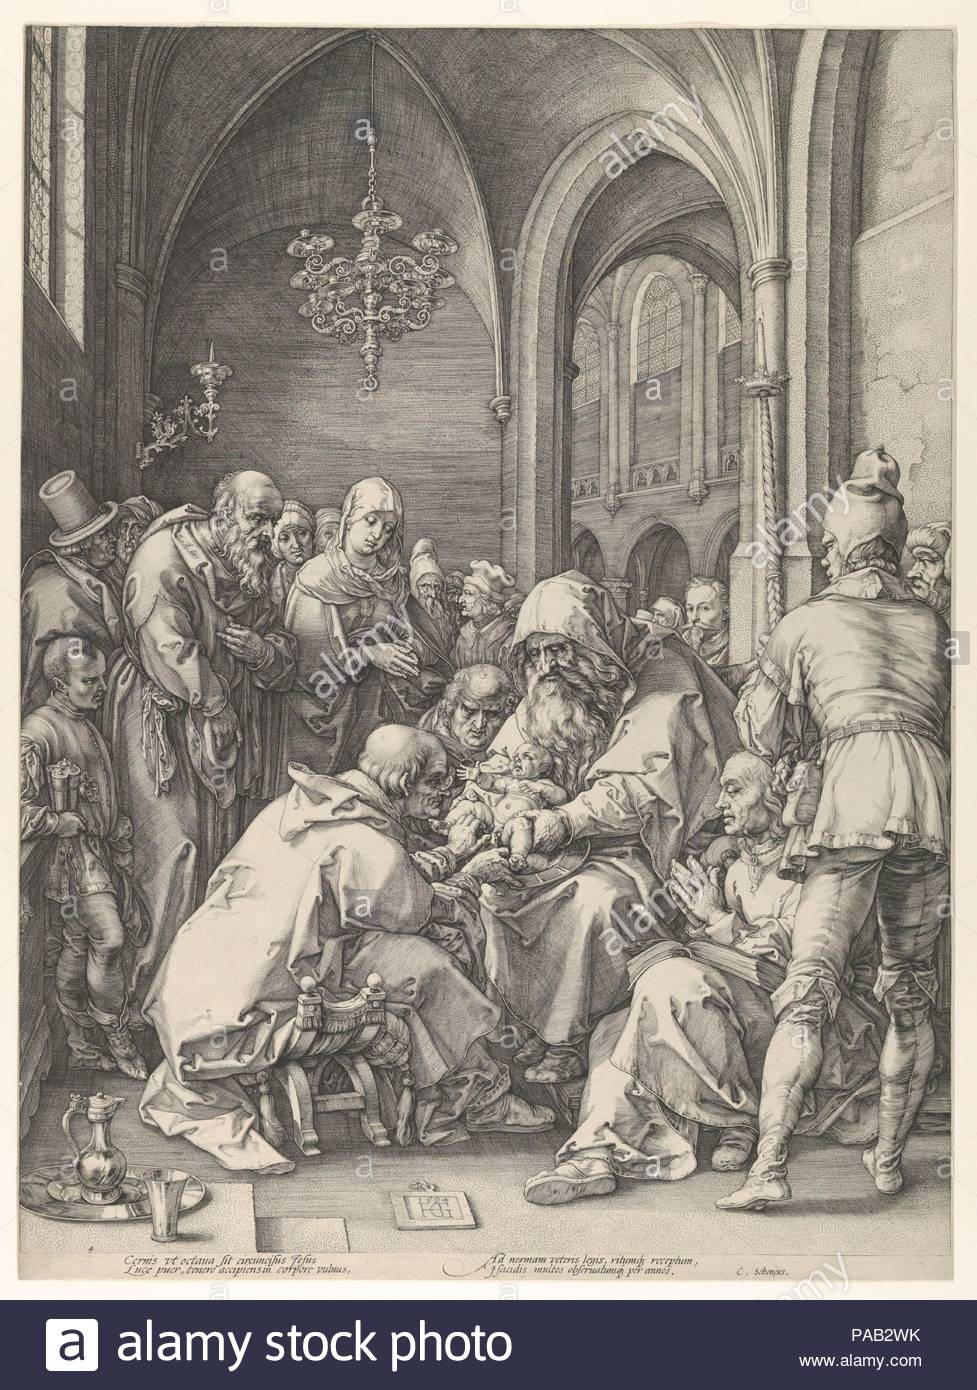 The Circumcision. Artist: Hendrick Goltzius (Netherlandish, Mühlbracht 1558-1617 Haarlem). Dimensions: Image: 18 1/4 x 13 13/16 in. (46.4 x 35.1 cm). Date: n.d..  The series to which this engraving belongs is commonly known as Goltzius's Meisterstiche, or masterpiece--by analogy with the three famous Meisterstiche by his great predecessor Albrecht Dürer. In a remarkable demonstration of virtuosity in the series, Goltzius imitated the styles of various masters in compositions of his own invention. In this case, he looked to the composition of Dürer's woodcut Circumcision from the series The Lif - Stock Image